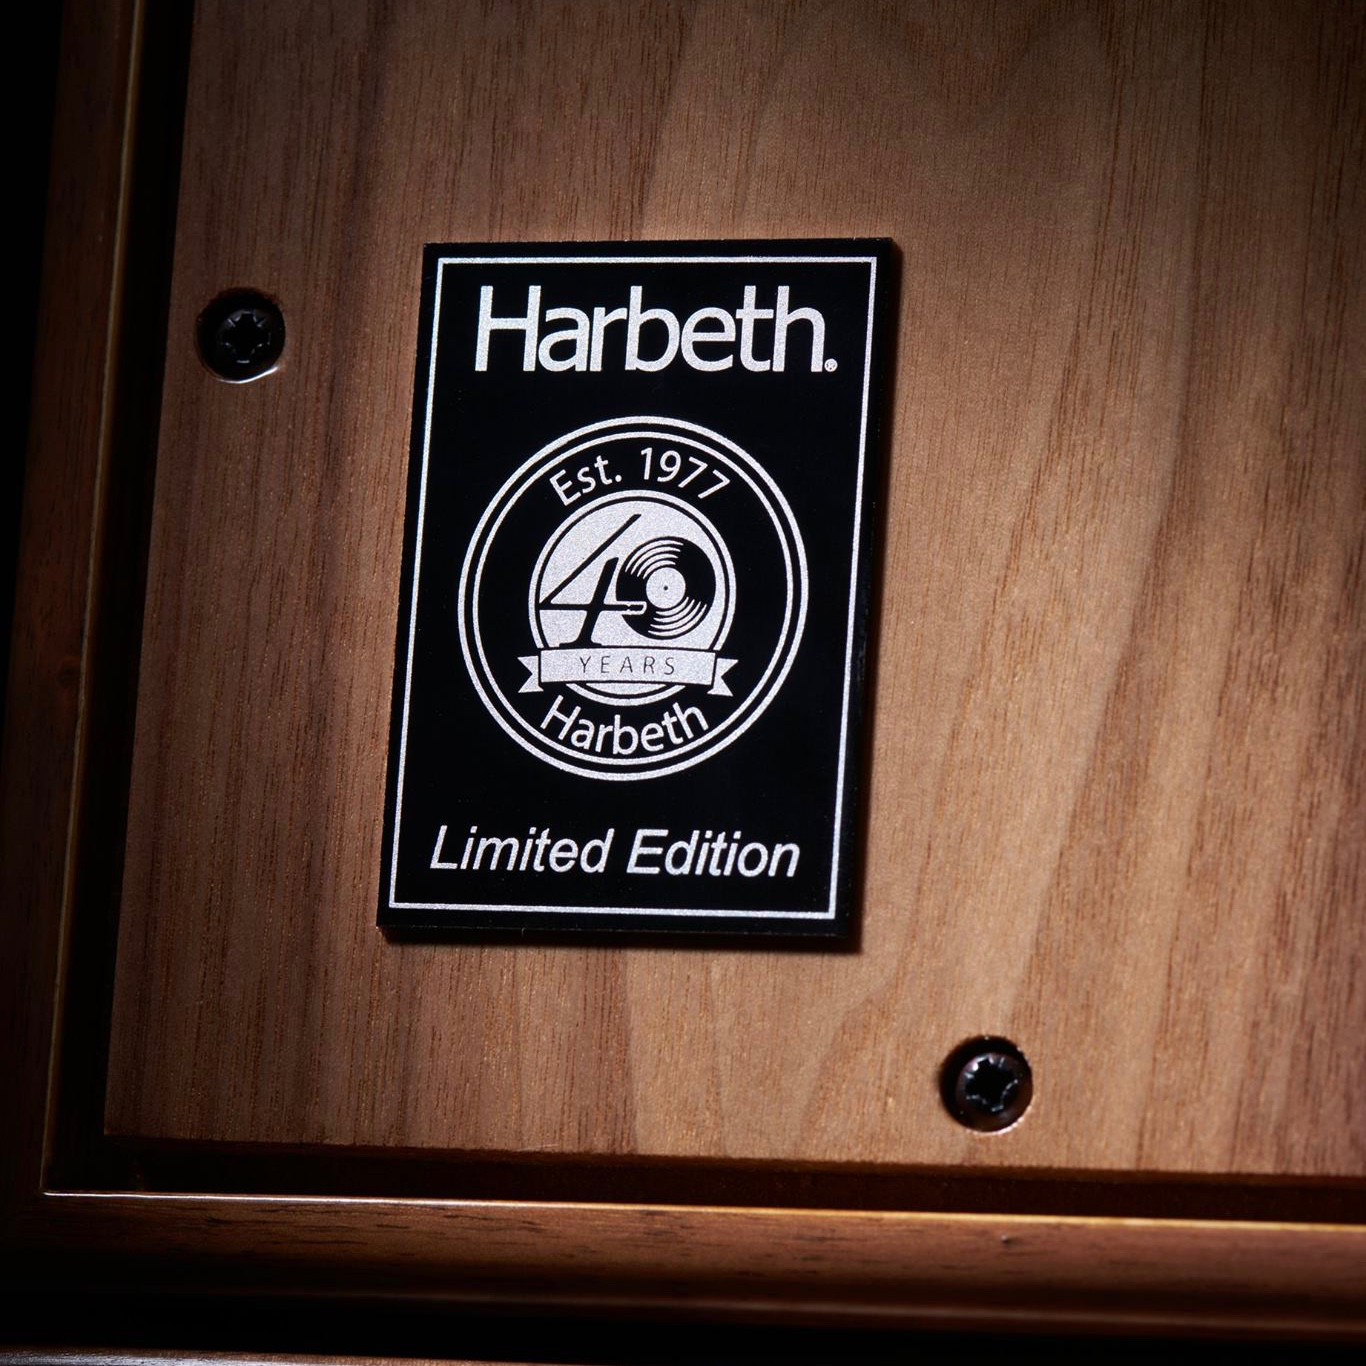 Harbeth 40th Anniversary Limited Edition road show